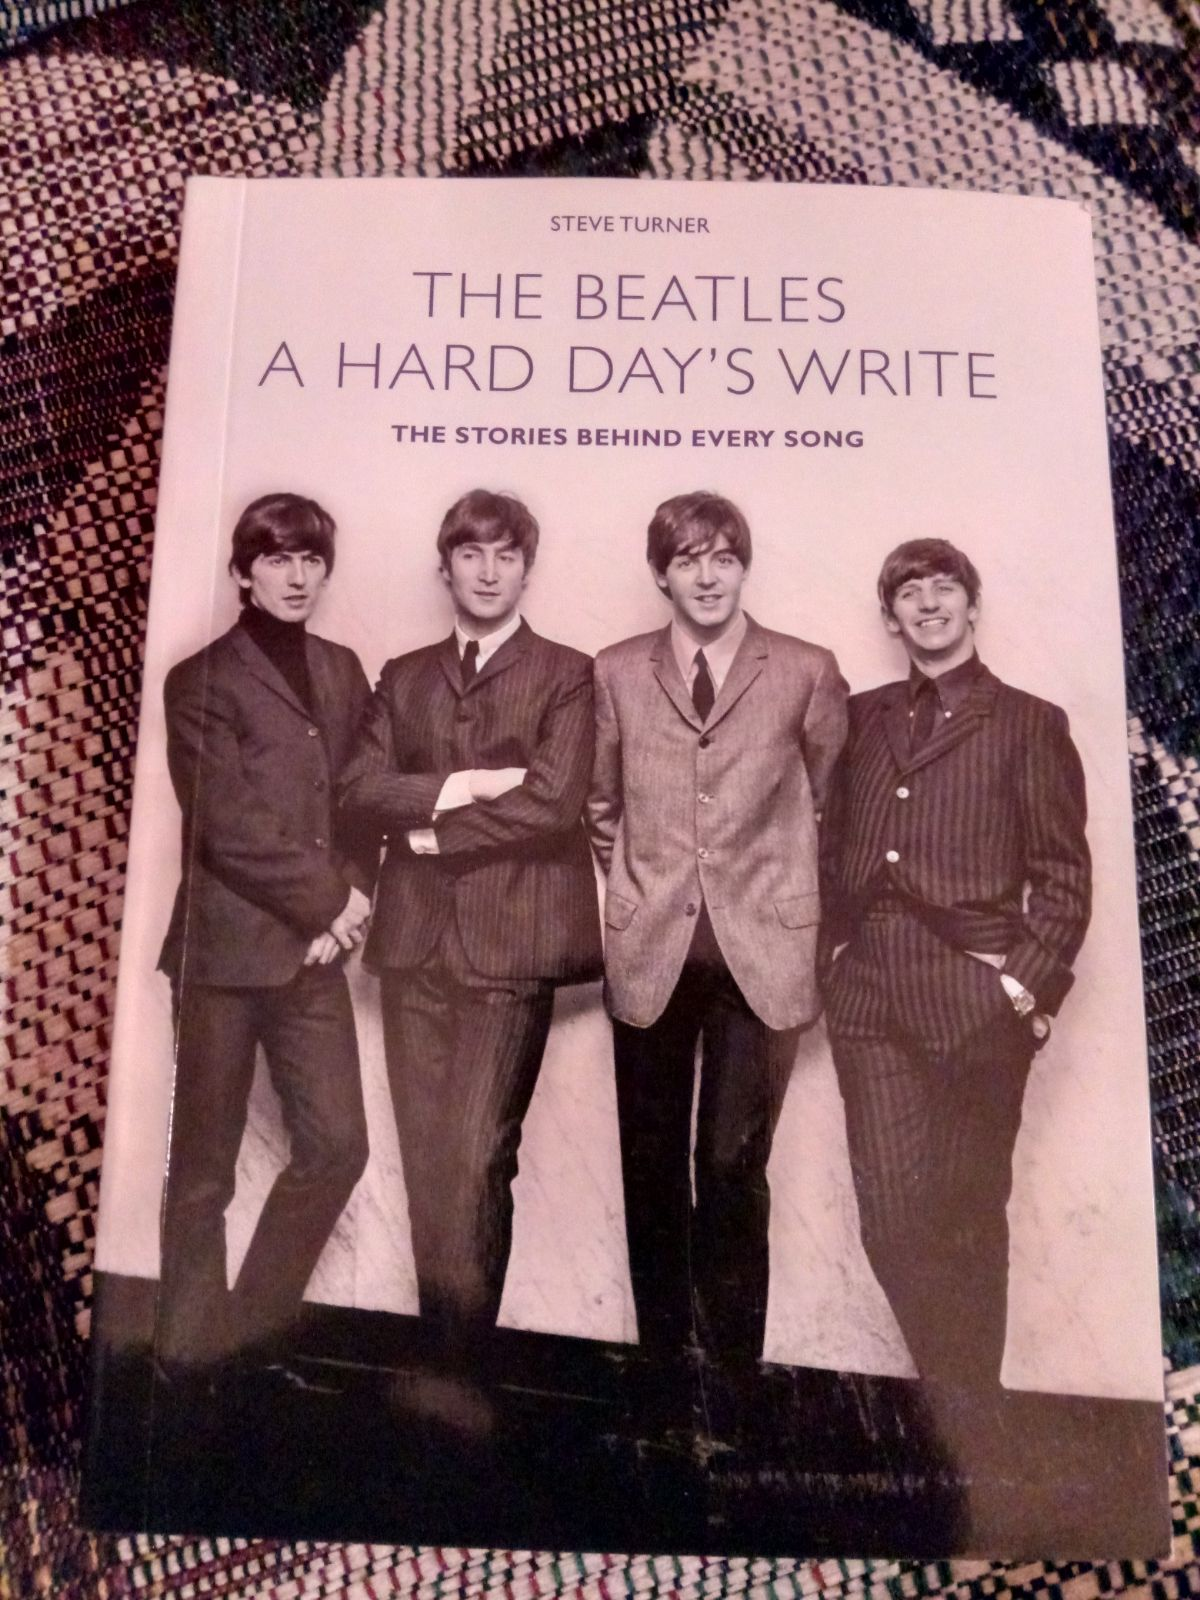 The Beatles A Hard Day's Write